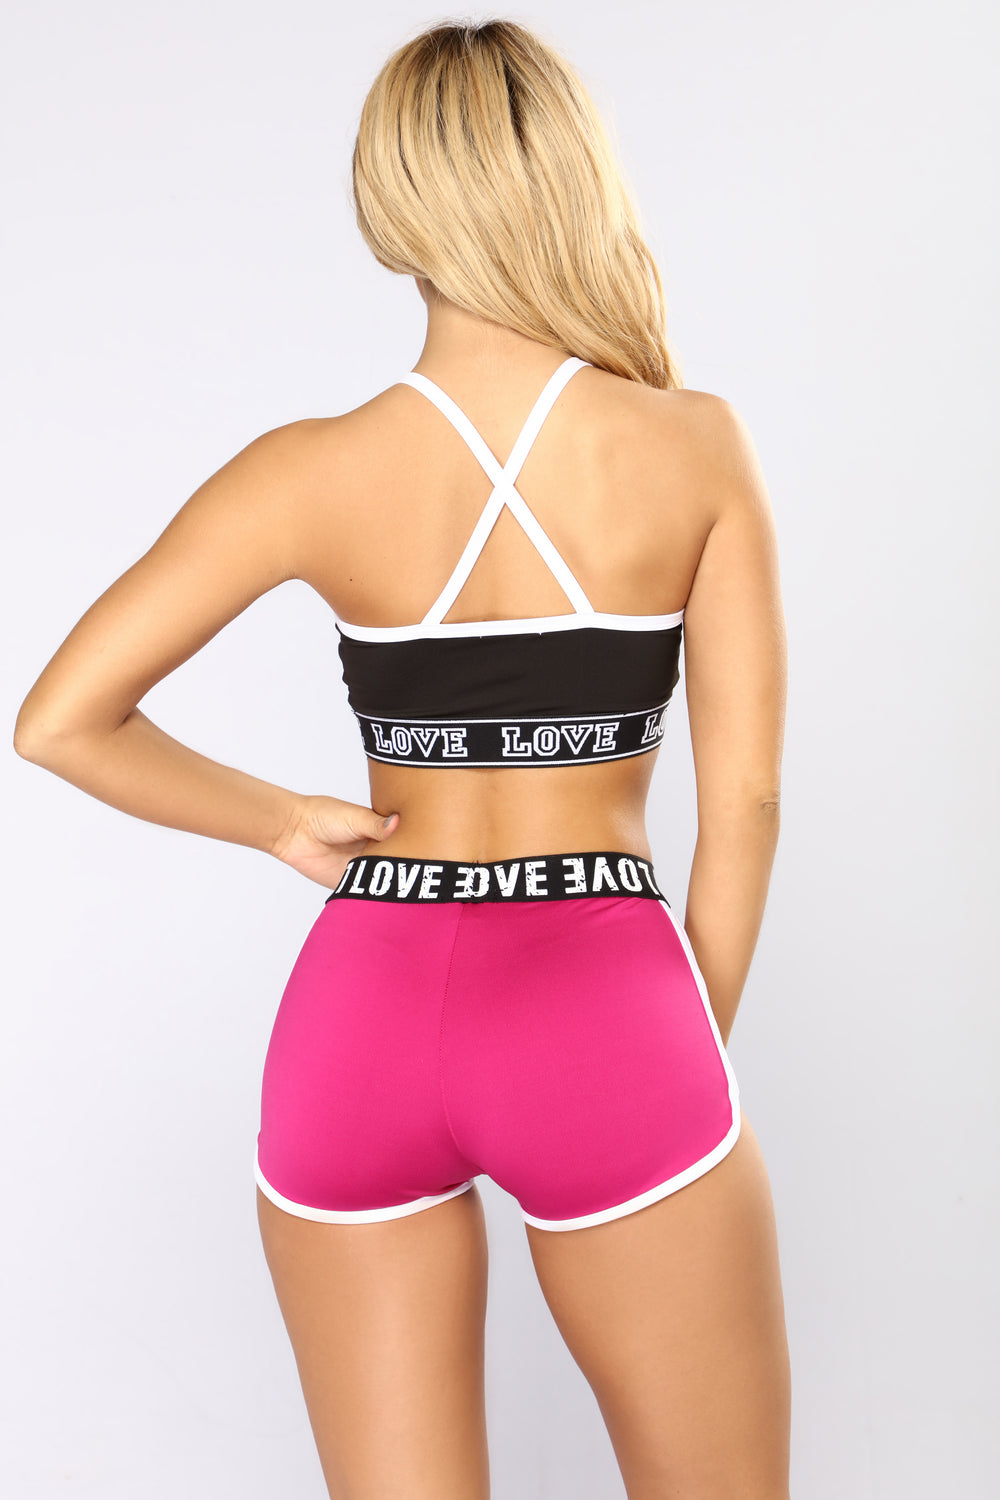 Never Your Lover Sports Bra - Black